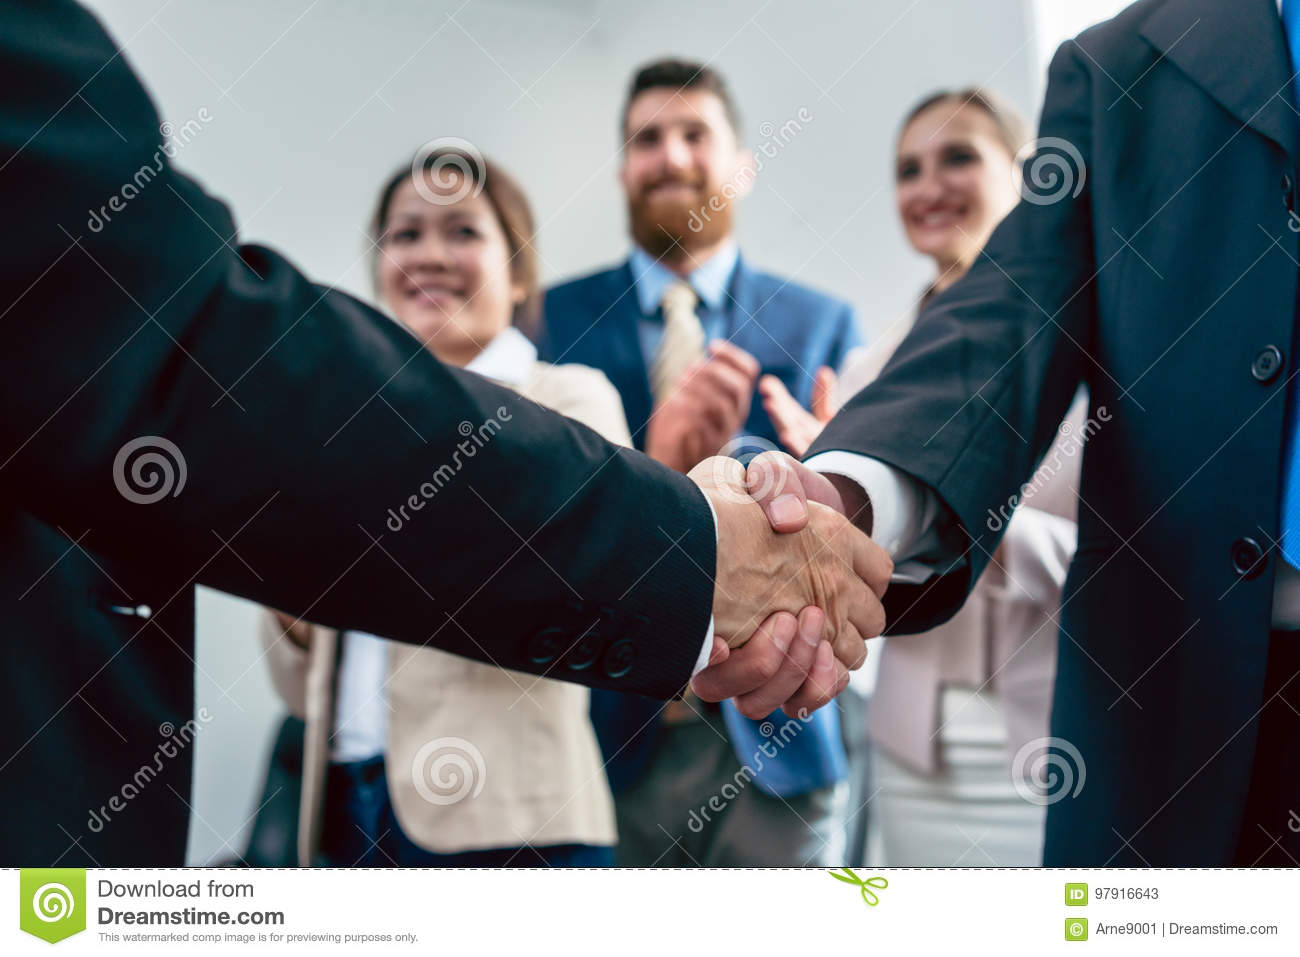 Close-up of the handshake of two business men after an important agreement